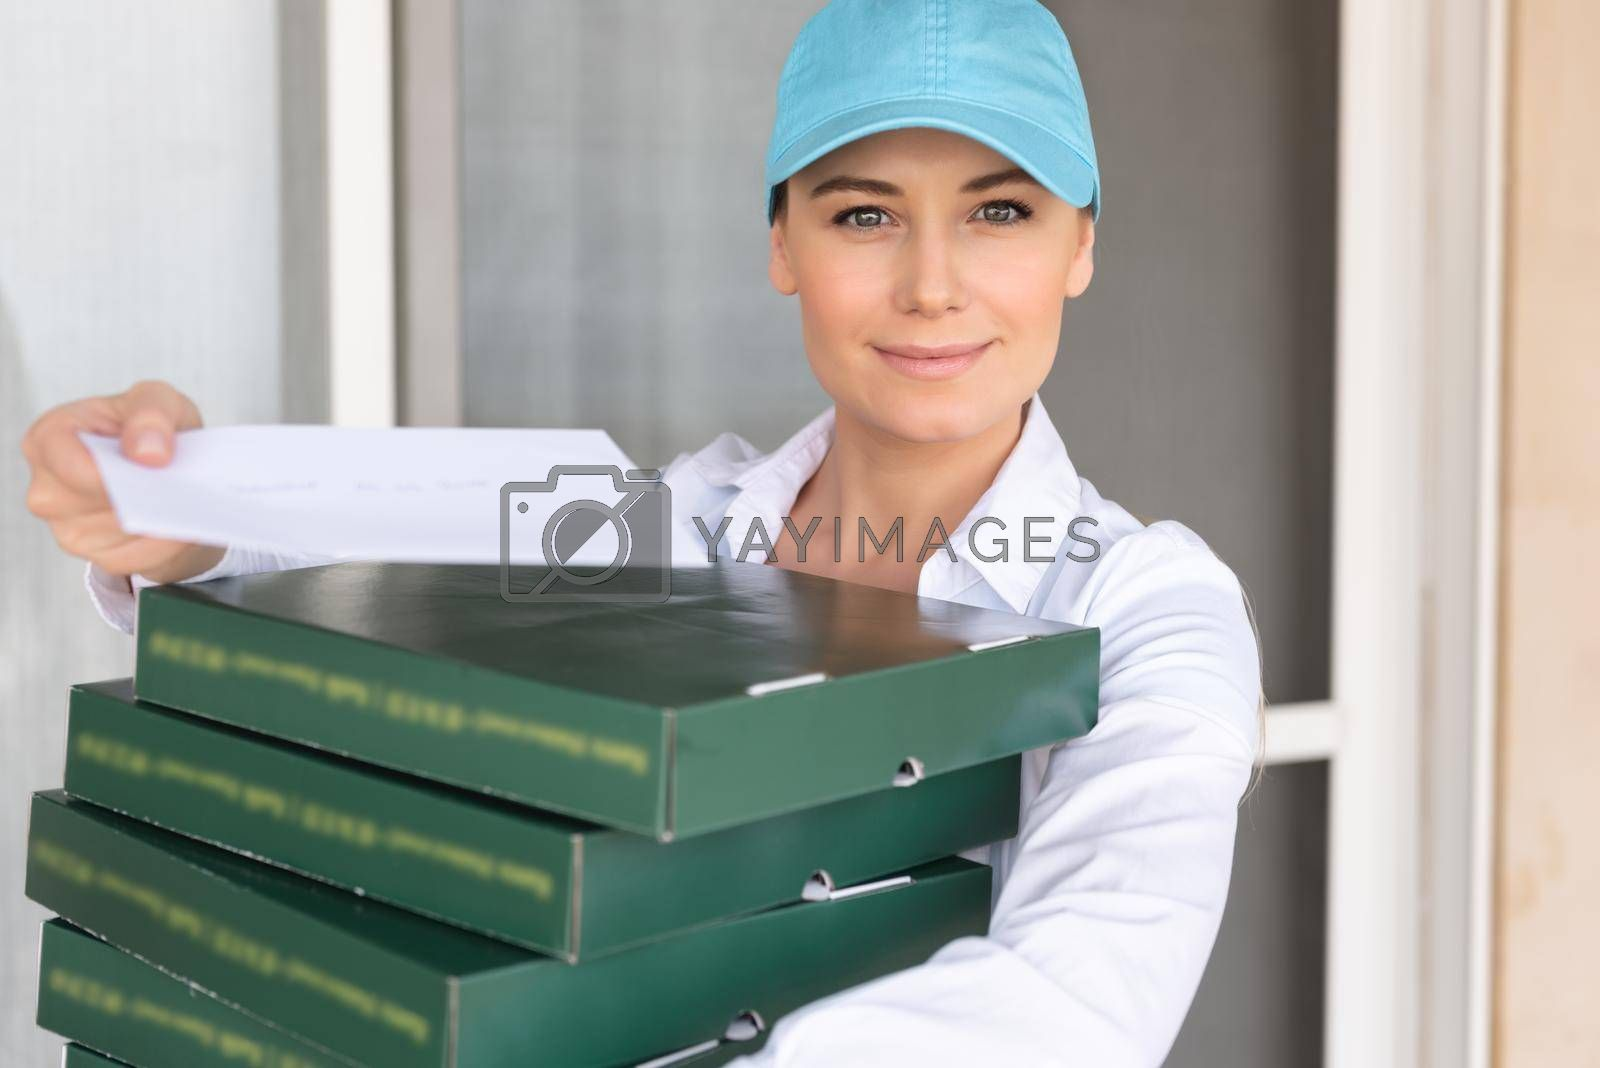 Portrait of a Pretty Girl Wearing Uniform Delivering Pizza to the Customer. Service Occupation. Fast Food. Food Delivery.